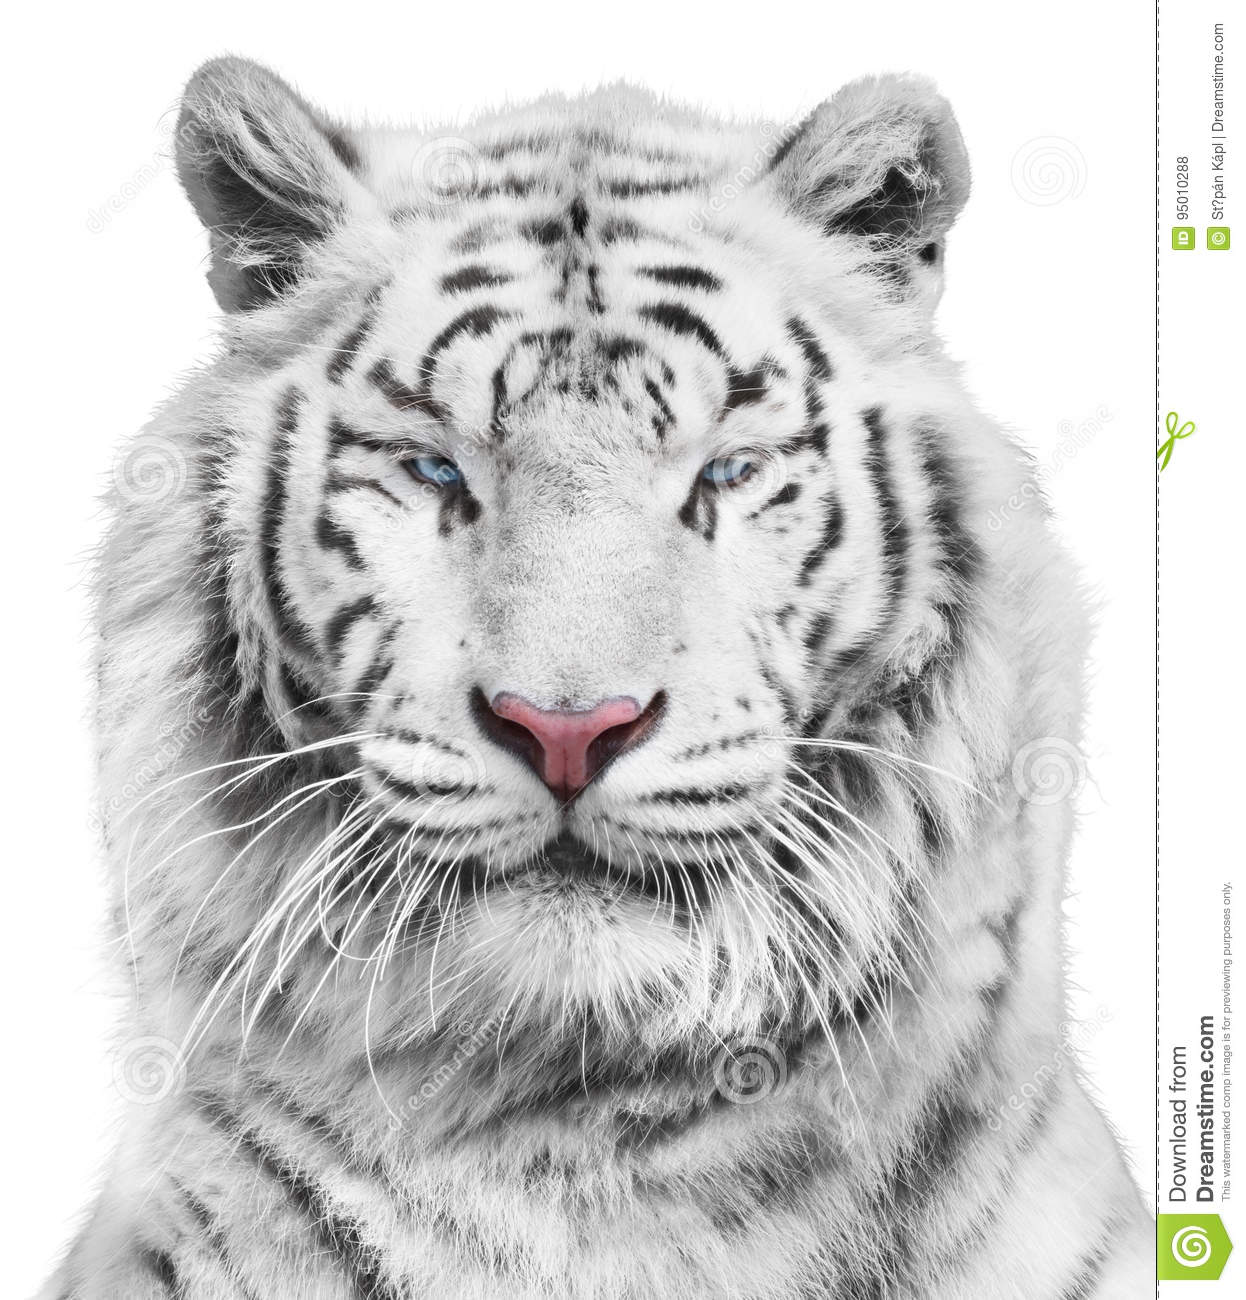 white tiger stock photo image of beast, black, face 95010288portrait of magnificent white tiger